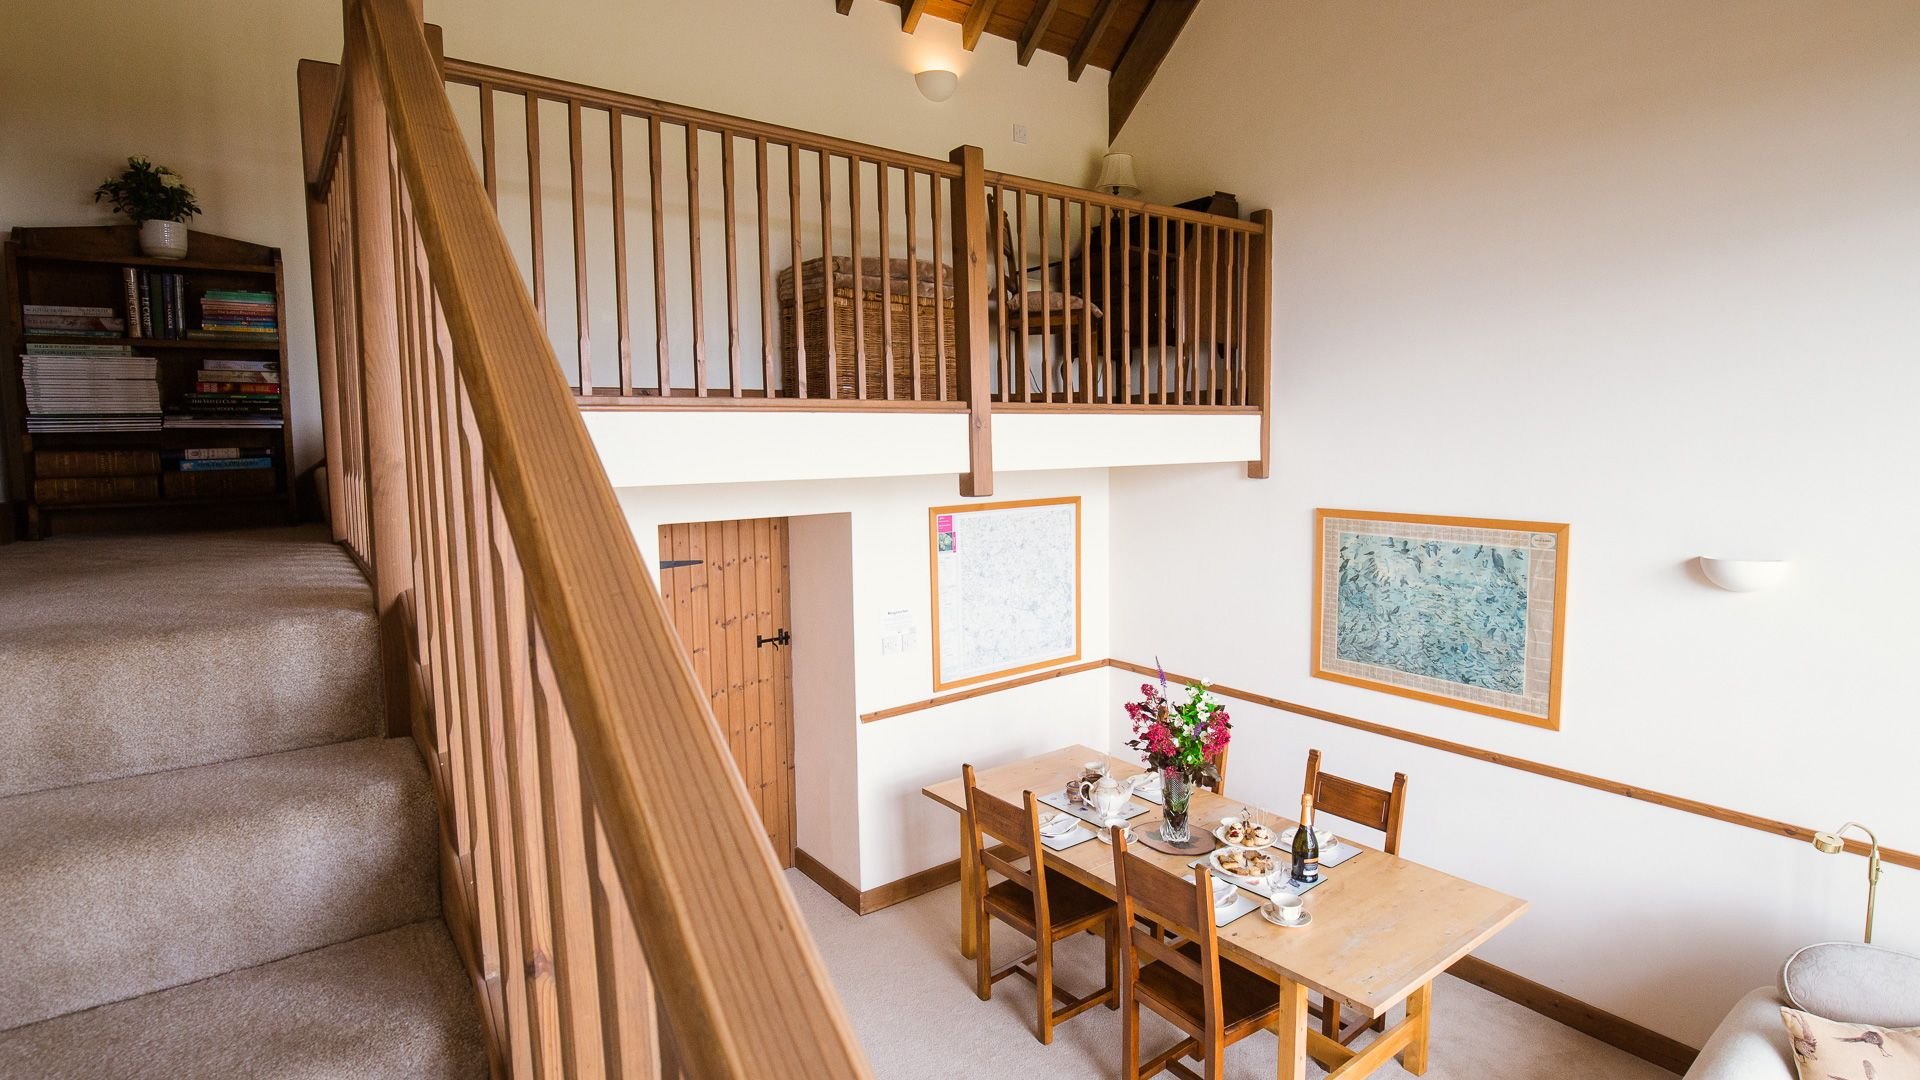 Galley landing, The Gallery, Bolthole Retreats